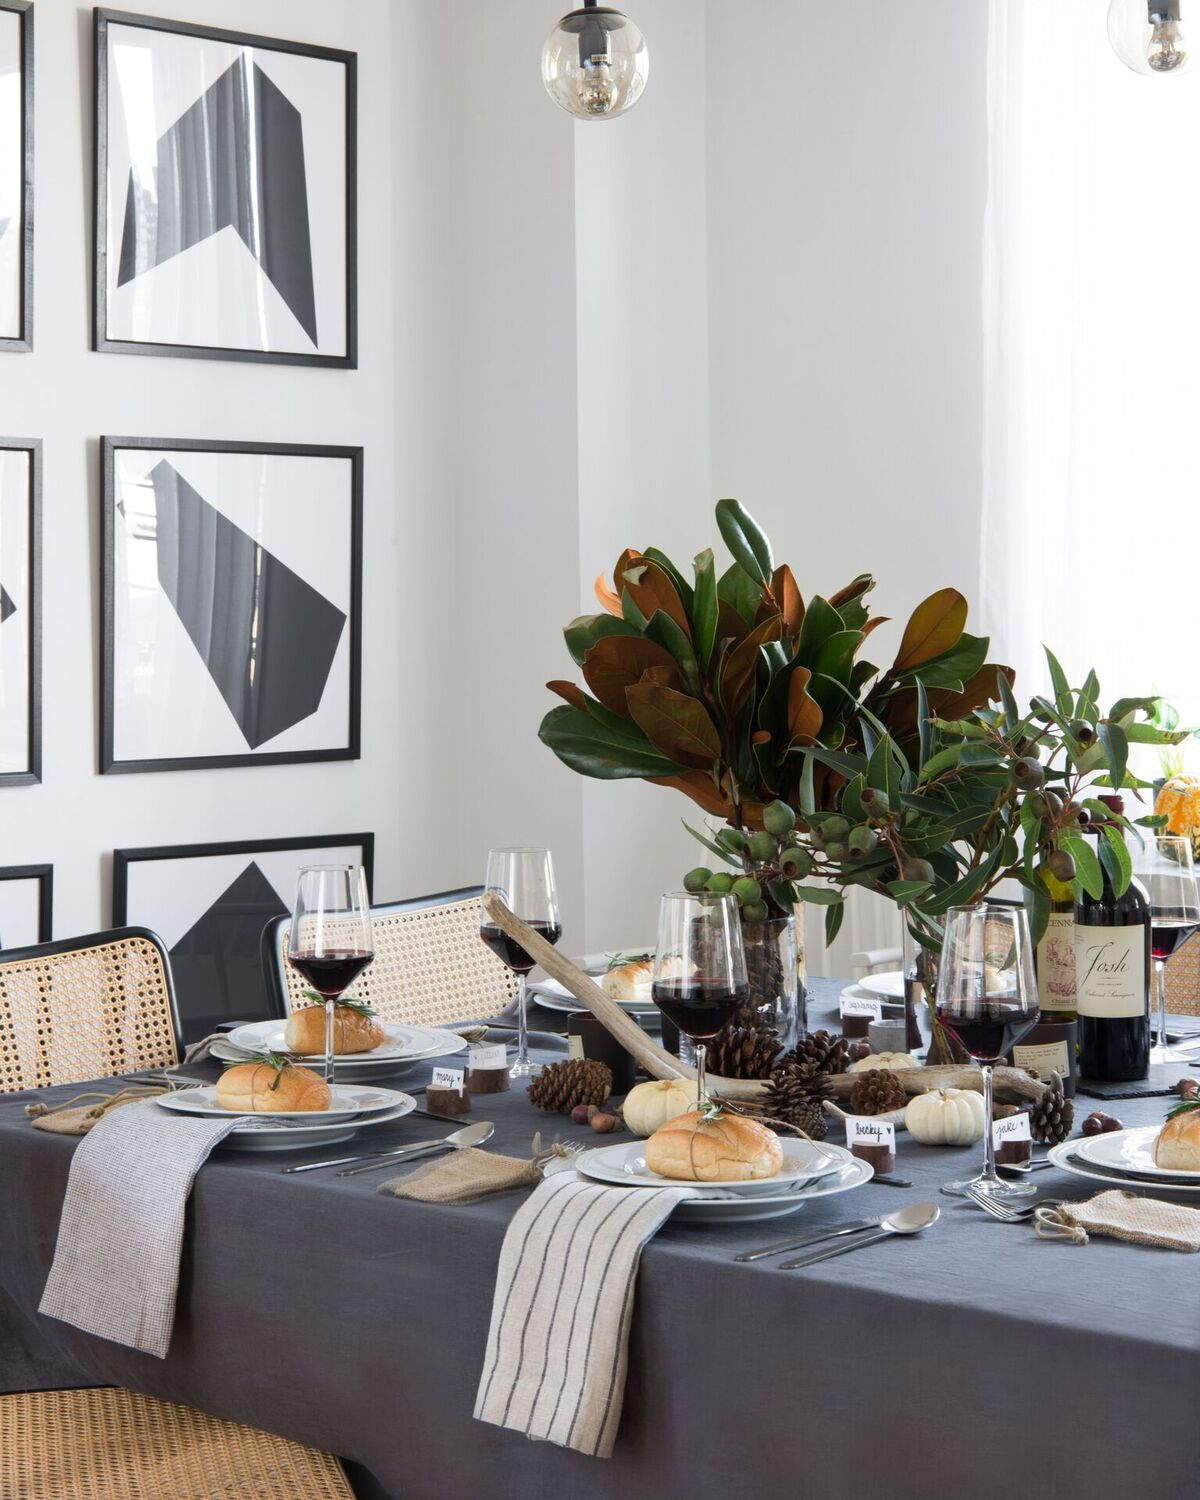 Olivia Palermo Apartment Decor B E C K Y S H E A Thanksgiving 2016